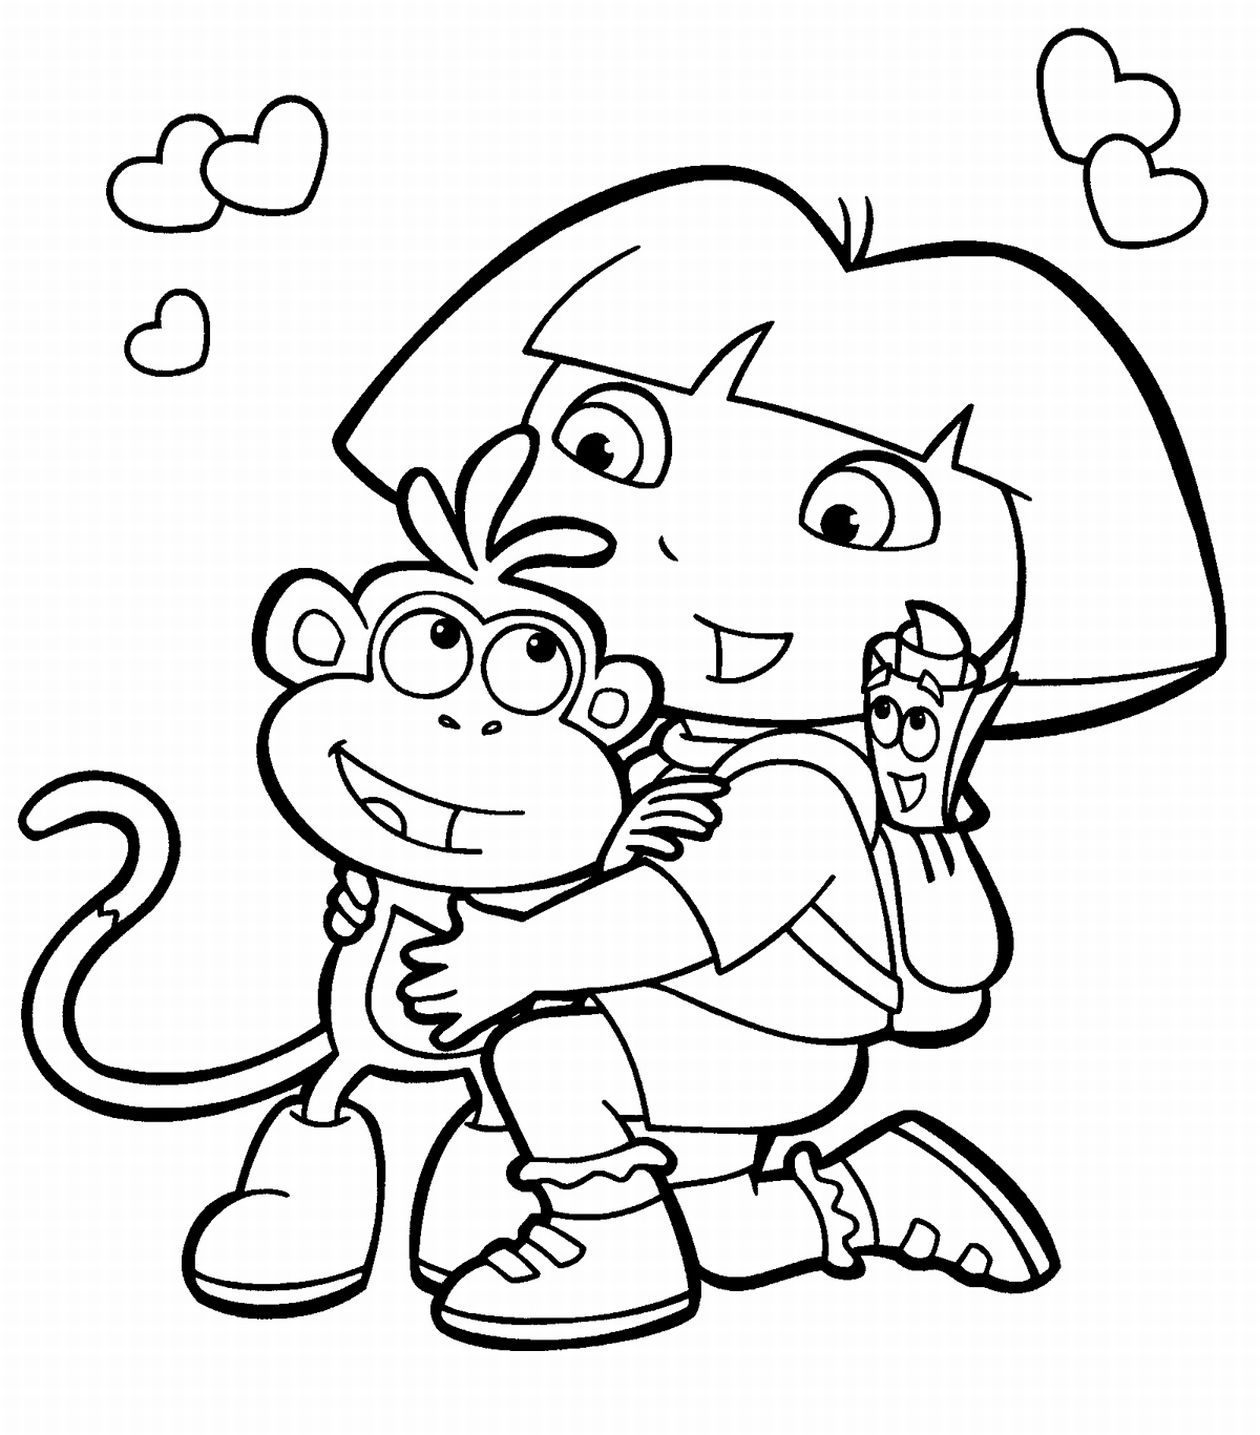 dora colouring pictures dora coloring pages free printables momjunction colouring dora pictures